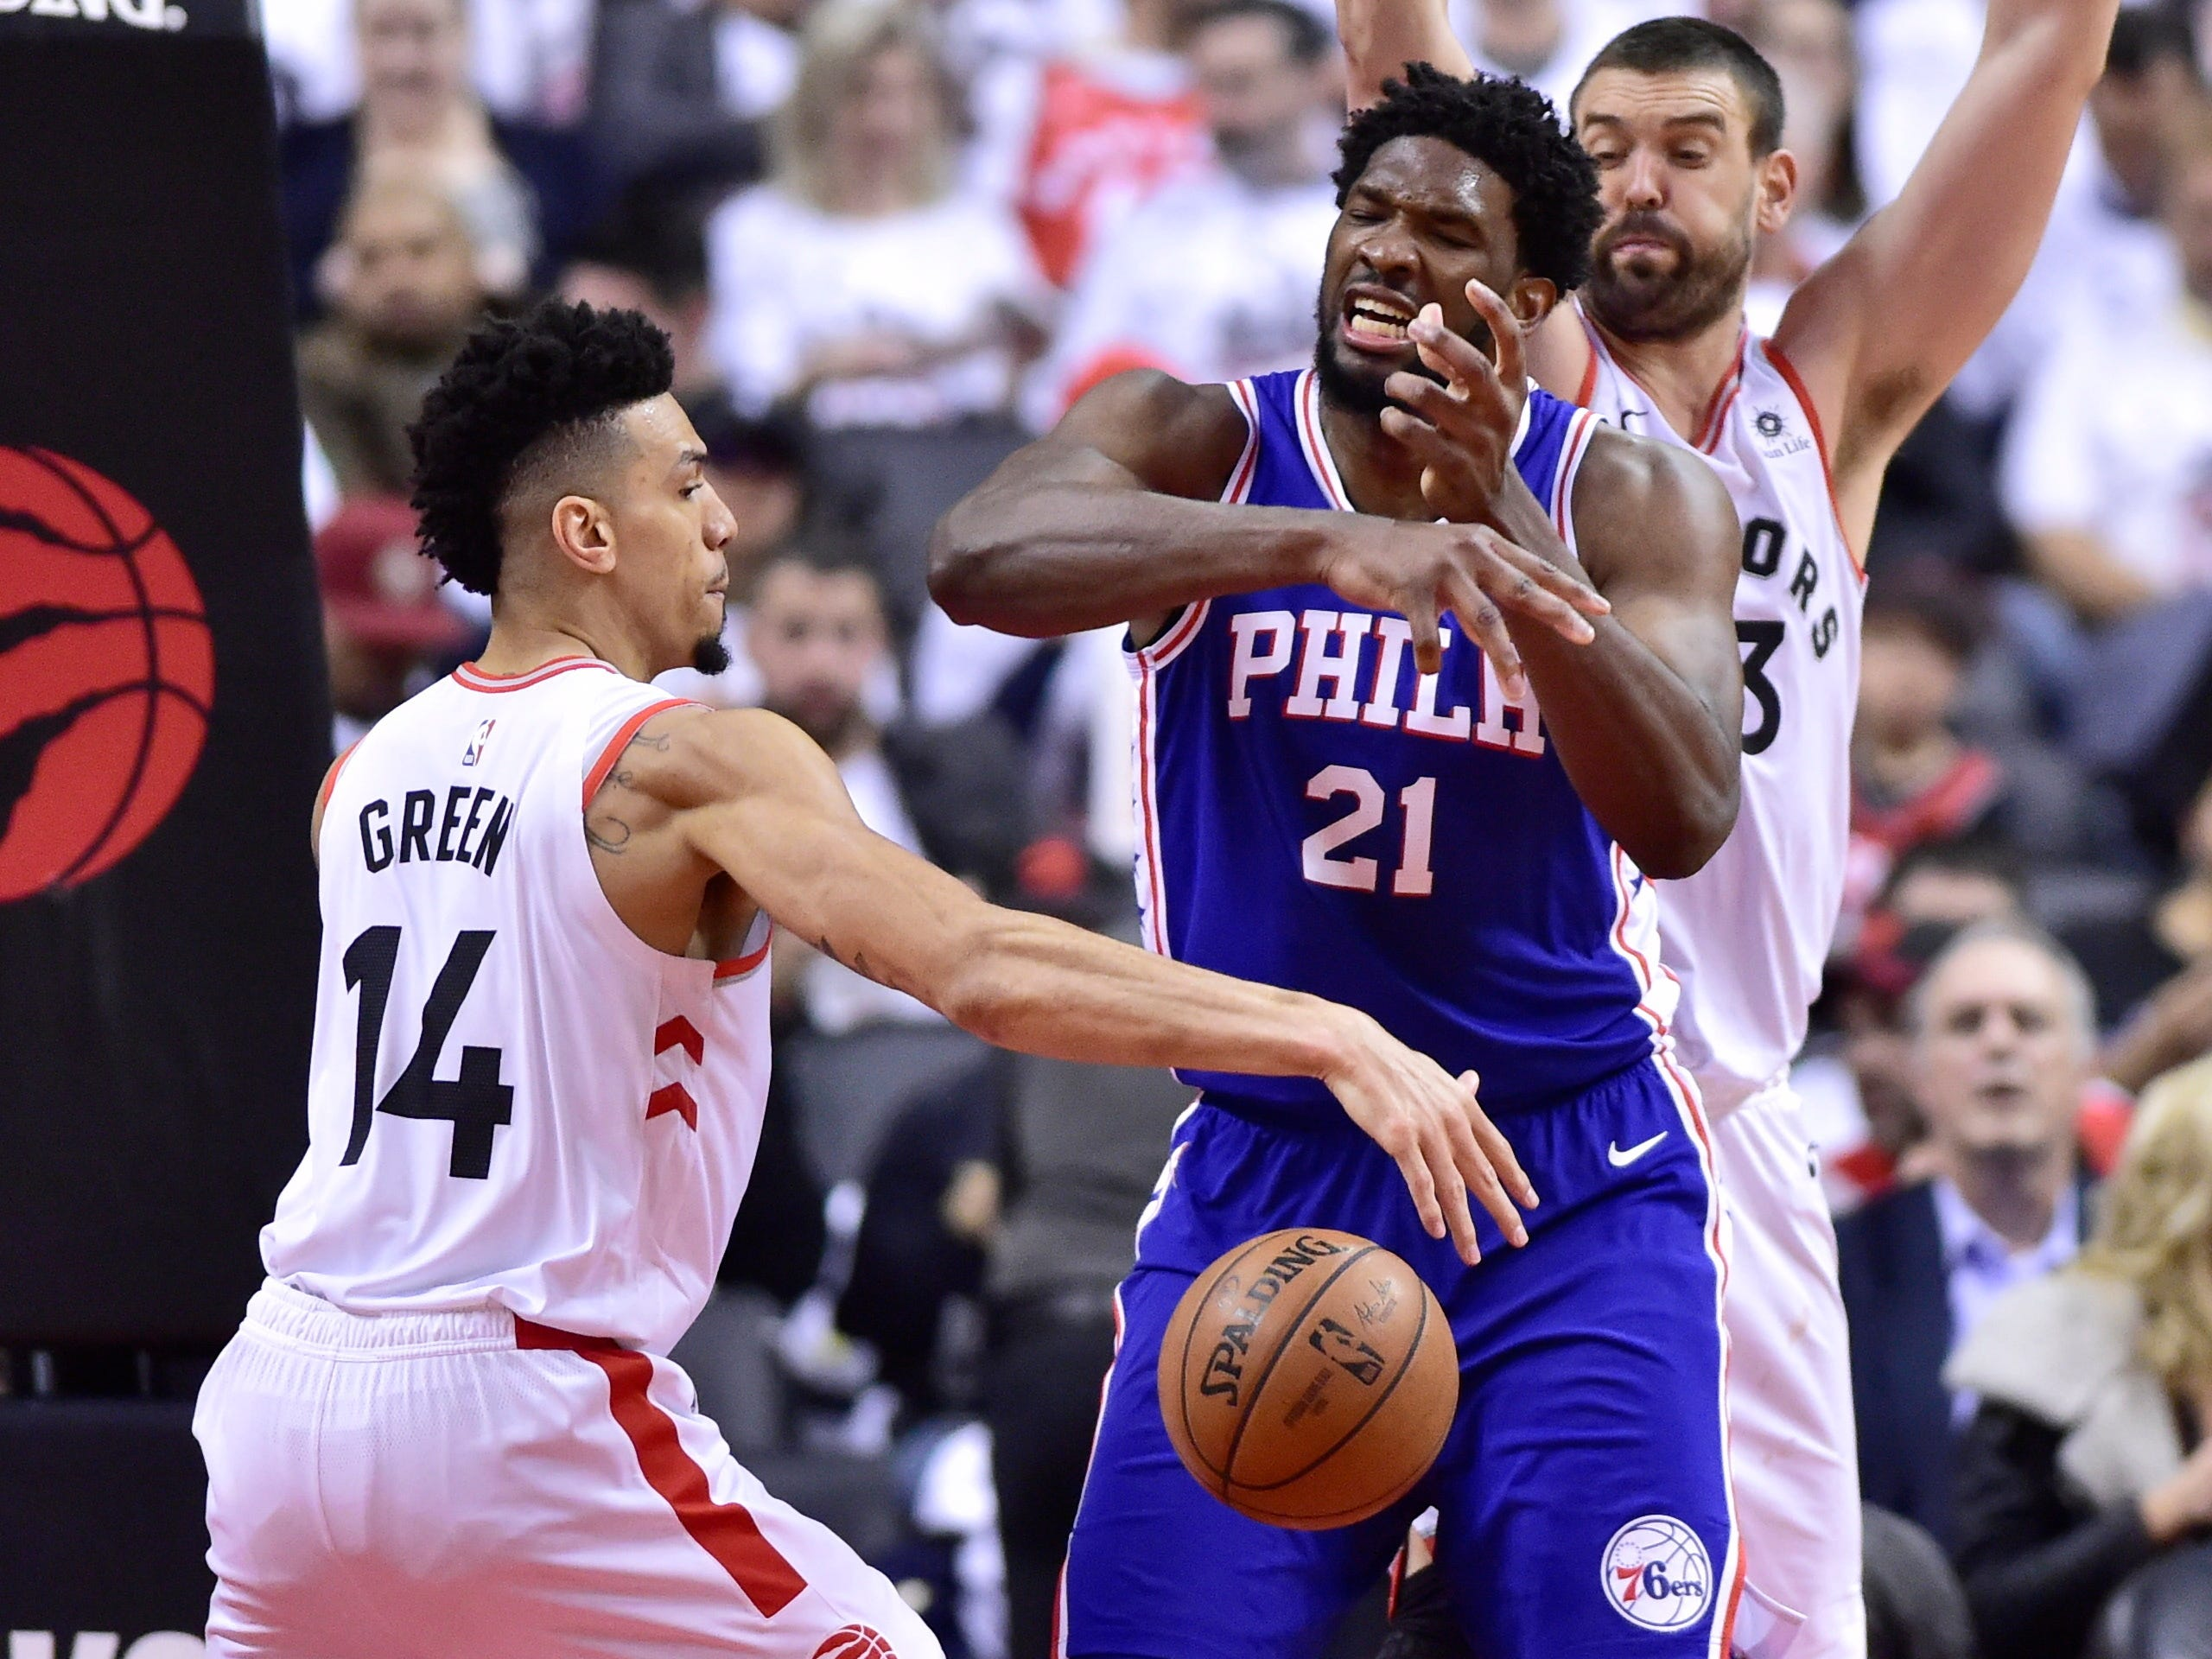 Shaquille O'Neal and Charles Barkley criticize Joel Embiid over approach, play in Game 5